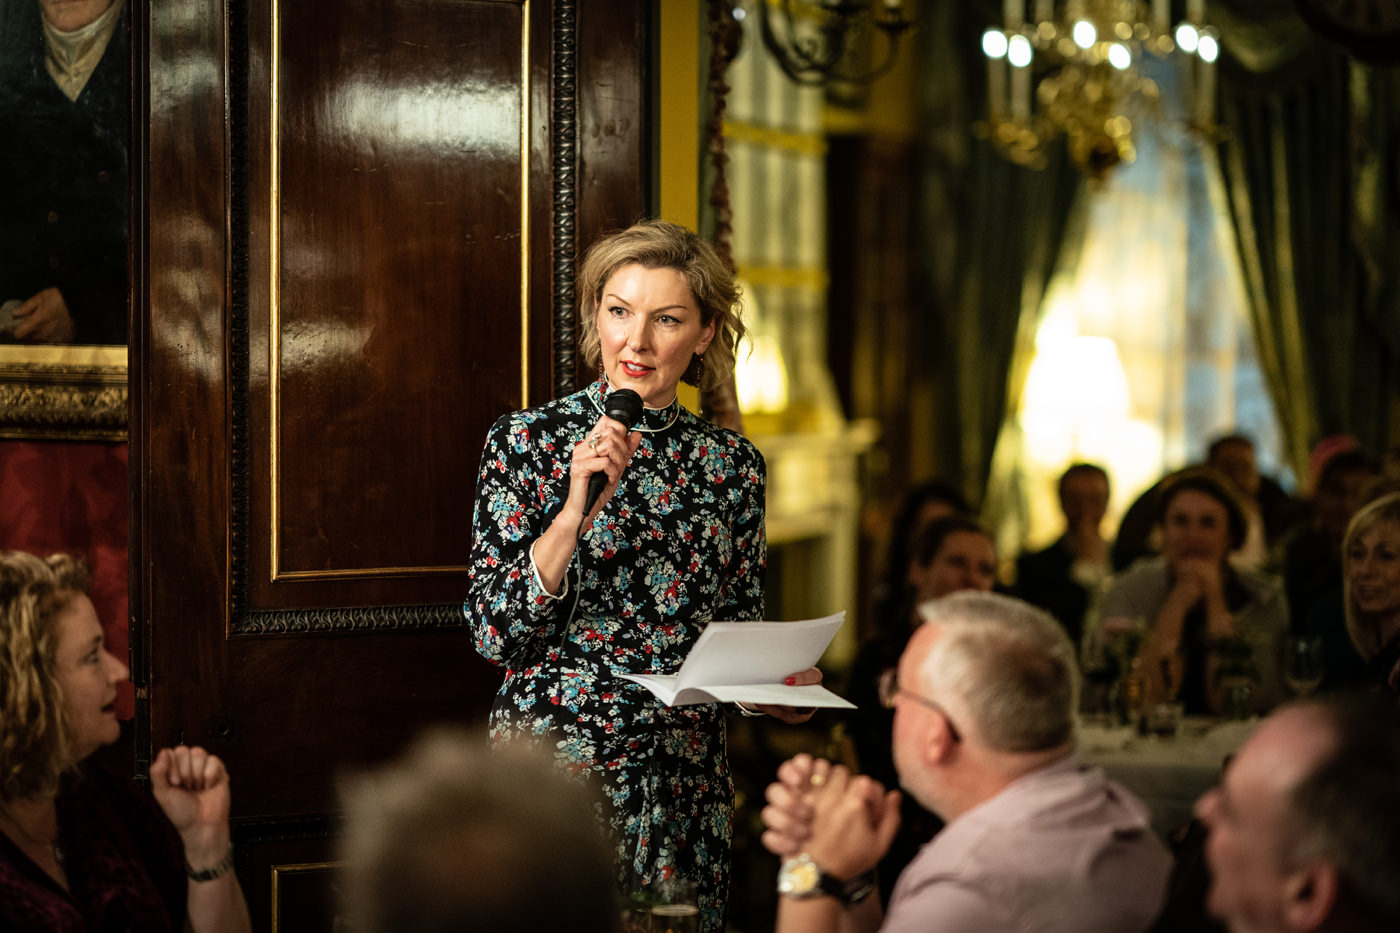 Matron of honour speech upstairs at Brunswick House in London